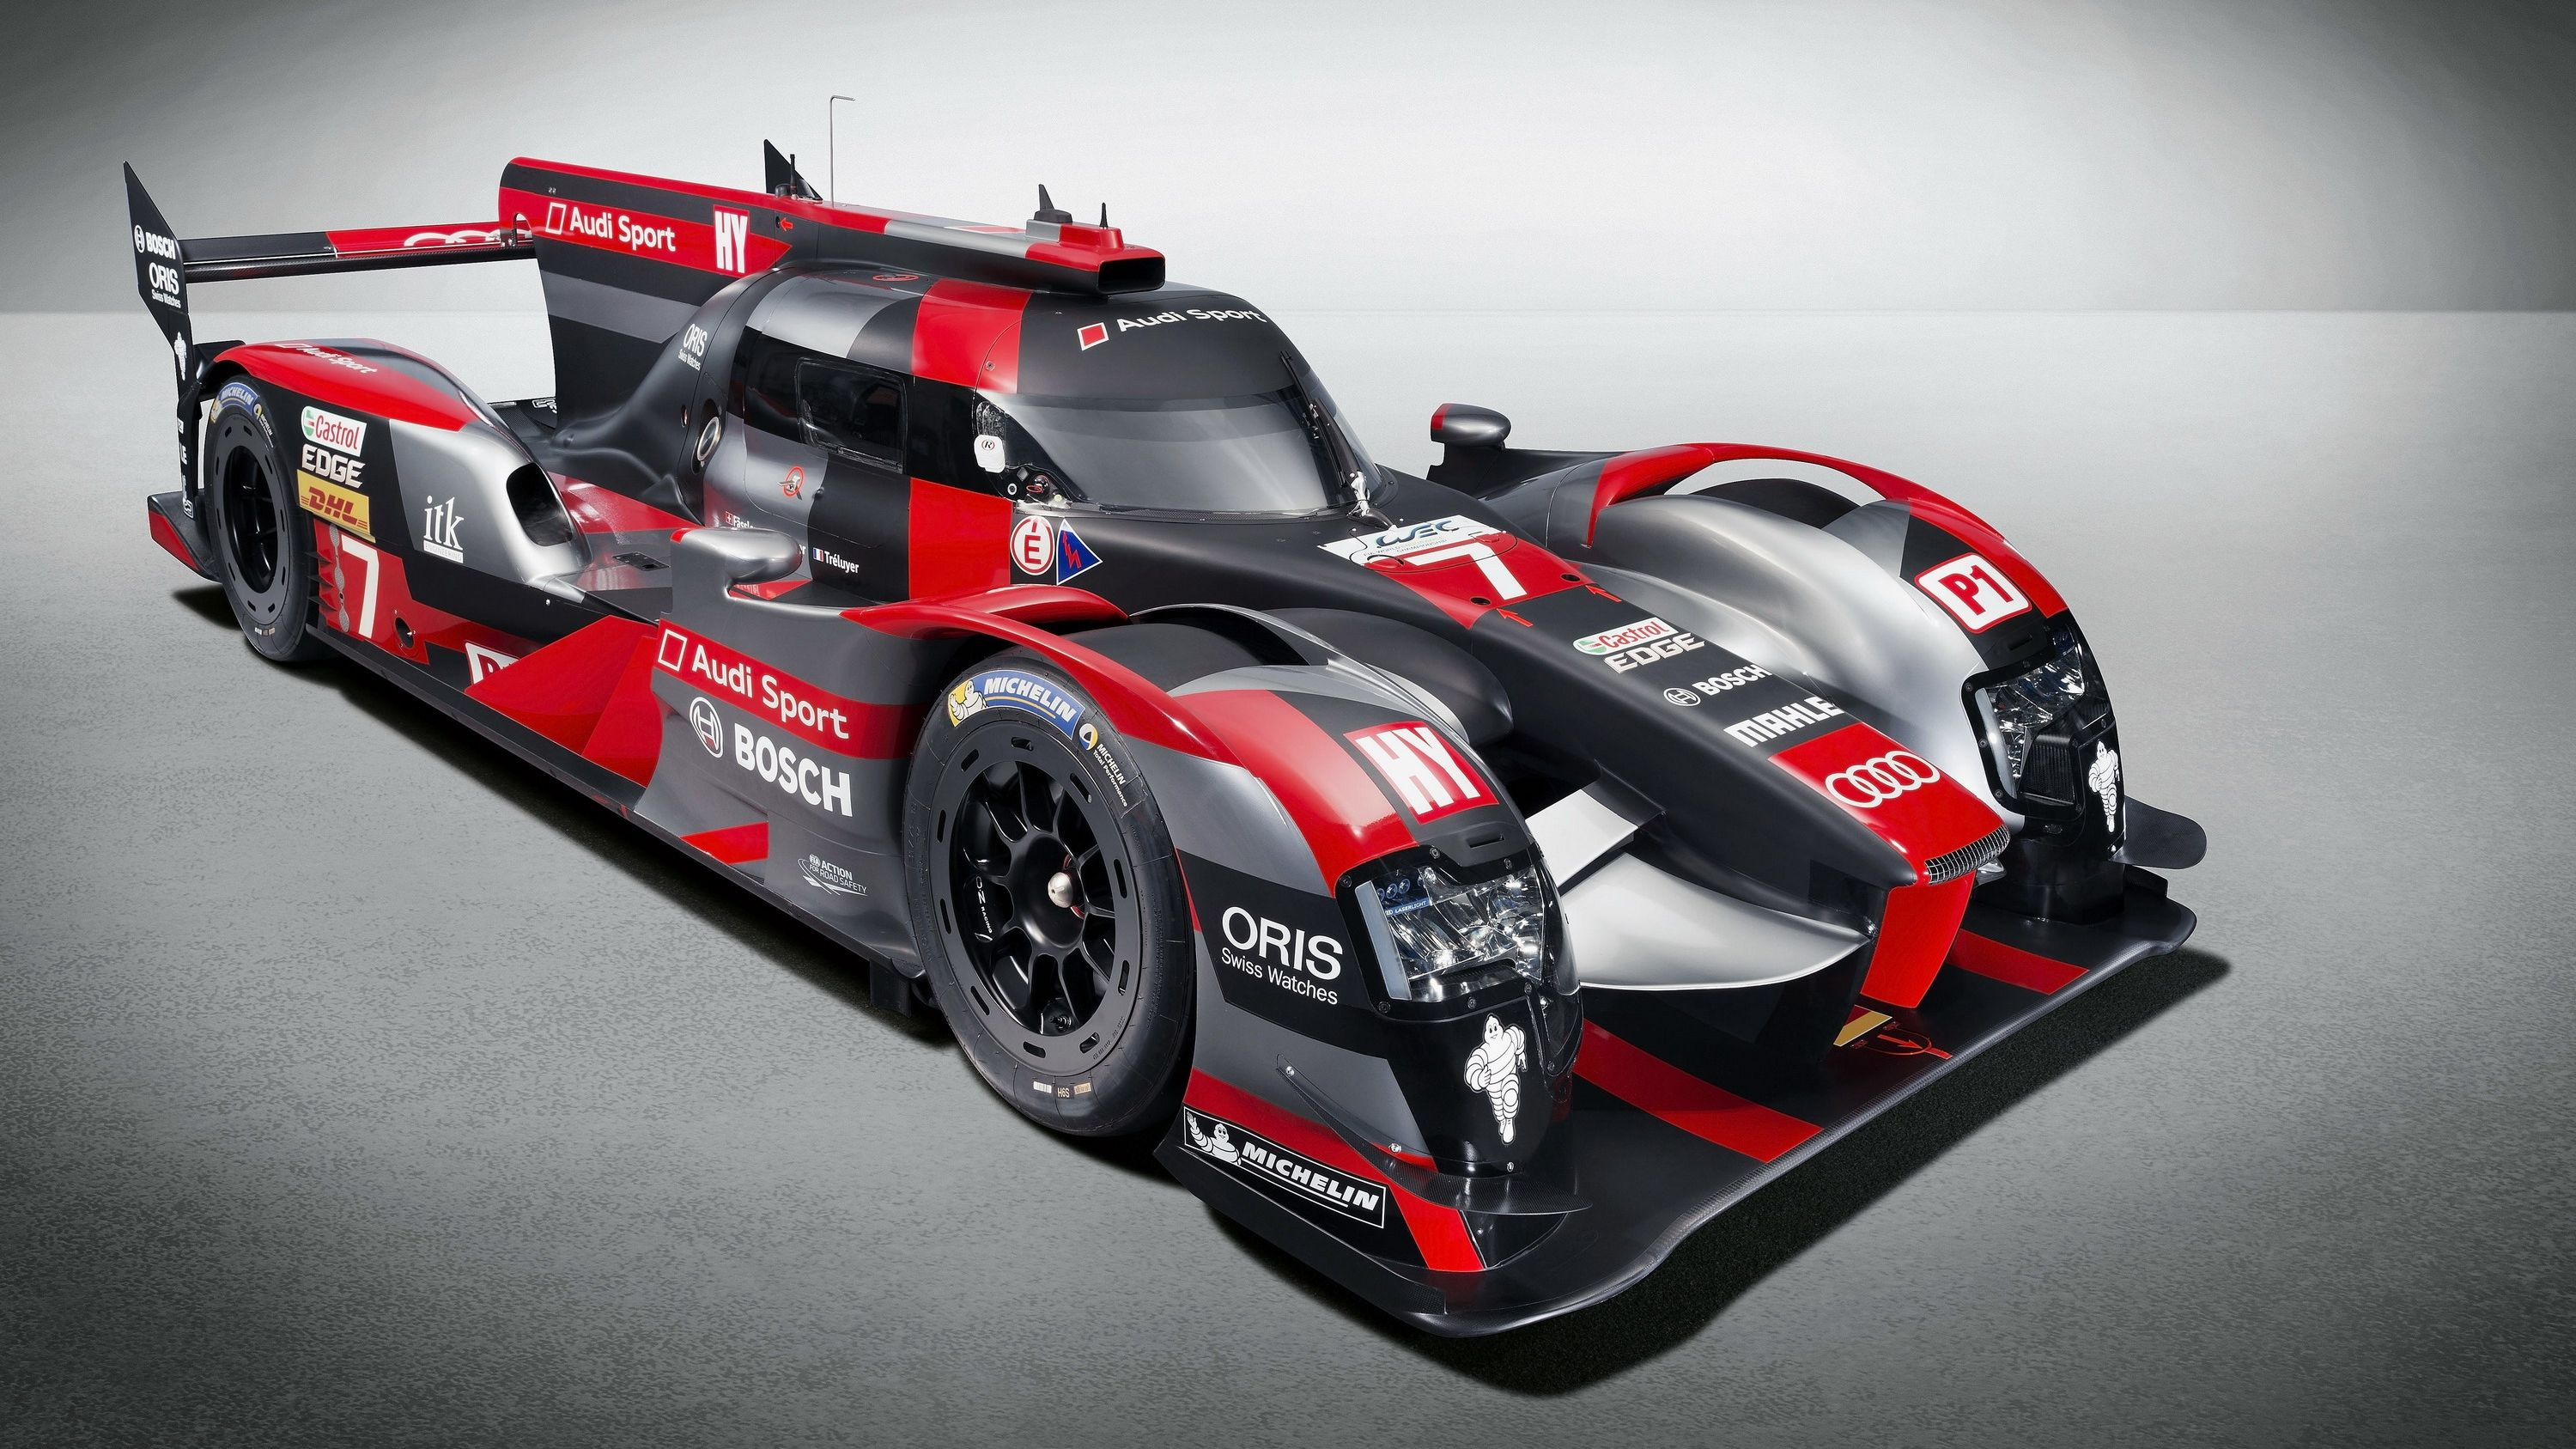 2016 Audi R18 Pictures, Photos, Wallpapers.